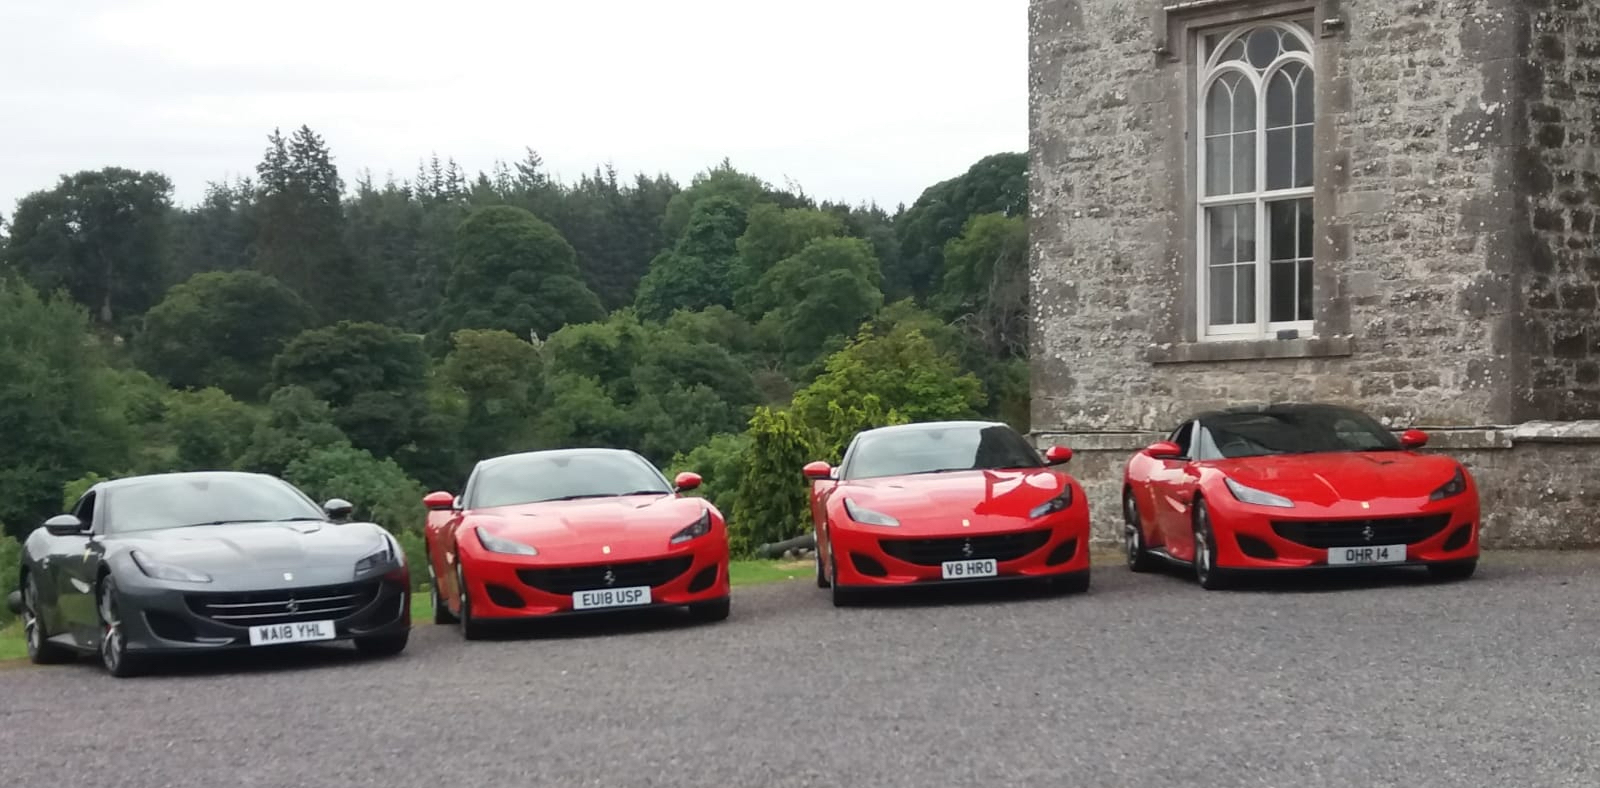 super cars on driveway delivered by Robinsons